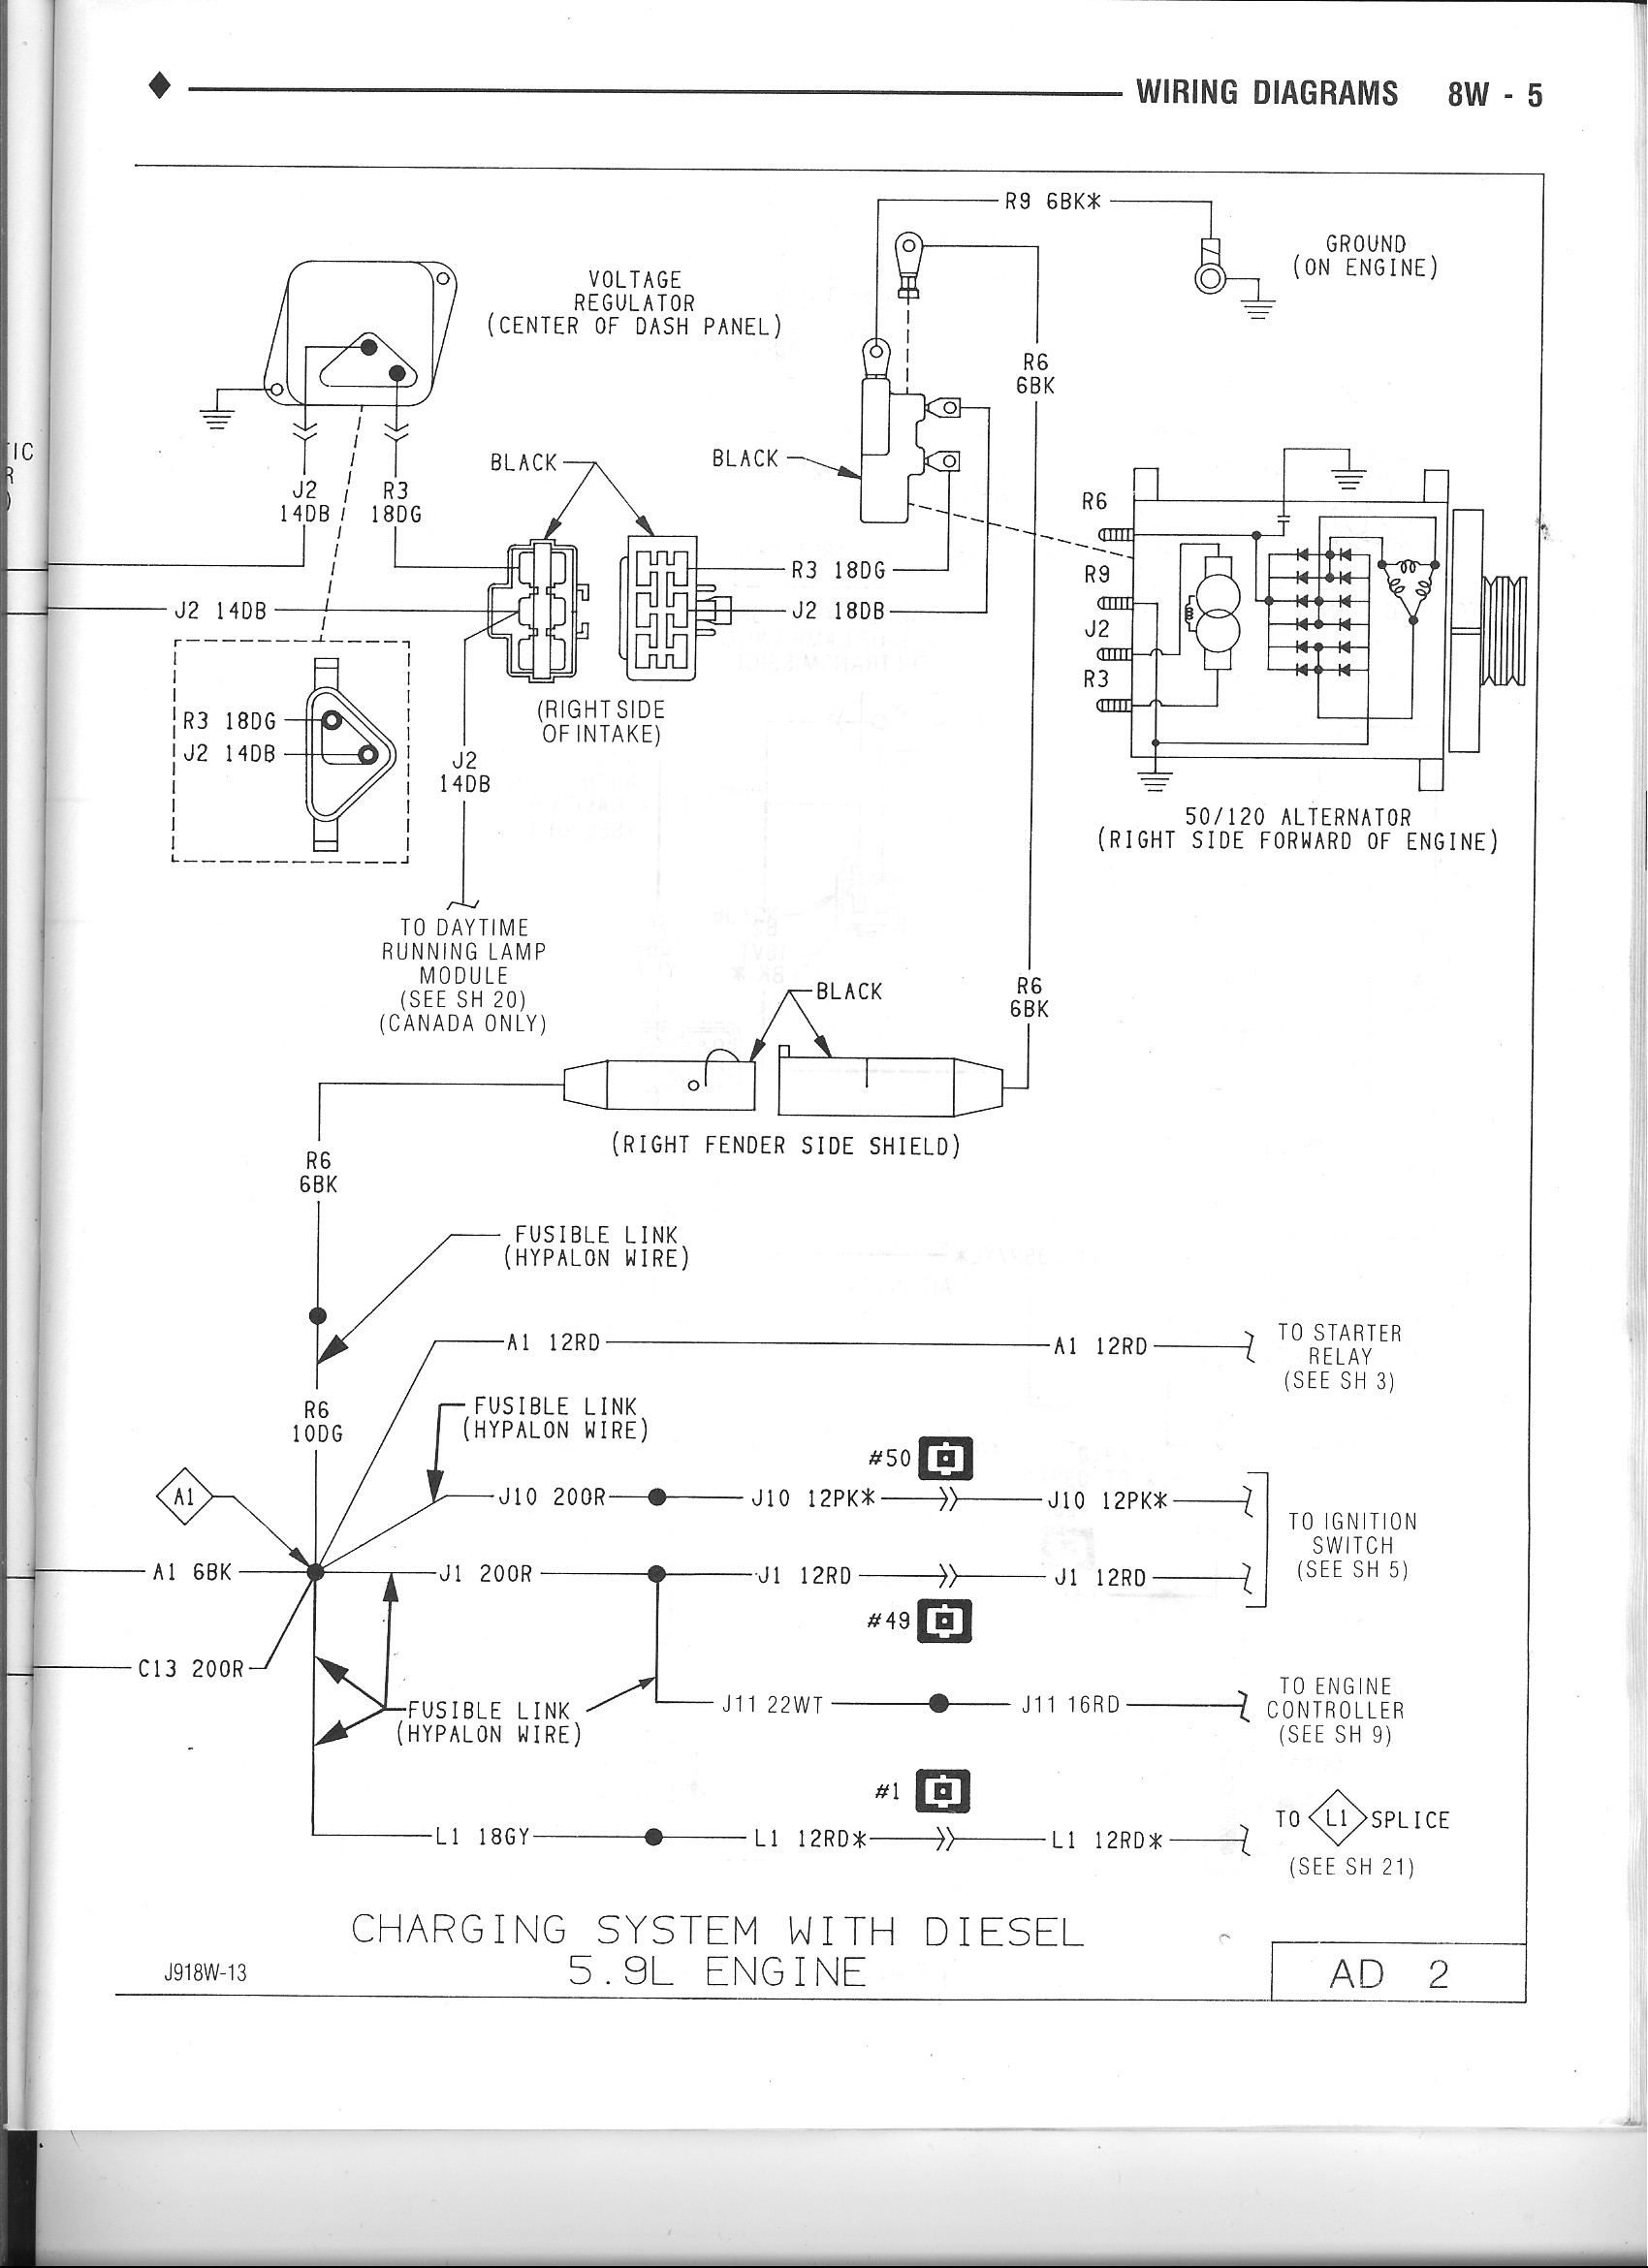 alternator 101 dodge diesel diesel truck resource forums 1956 dodge truck wiring diagram dens site net dodge_ctd 1991 ams scan05 jpg